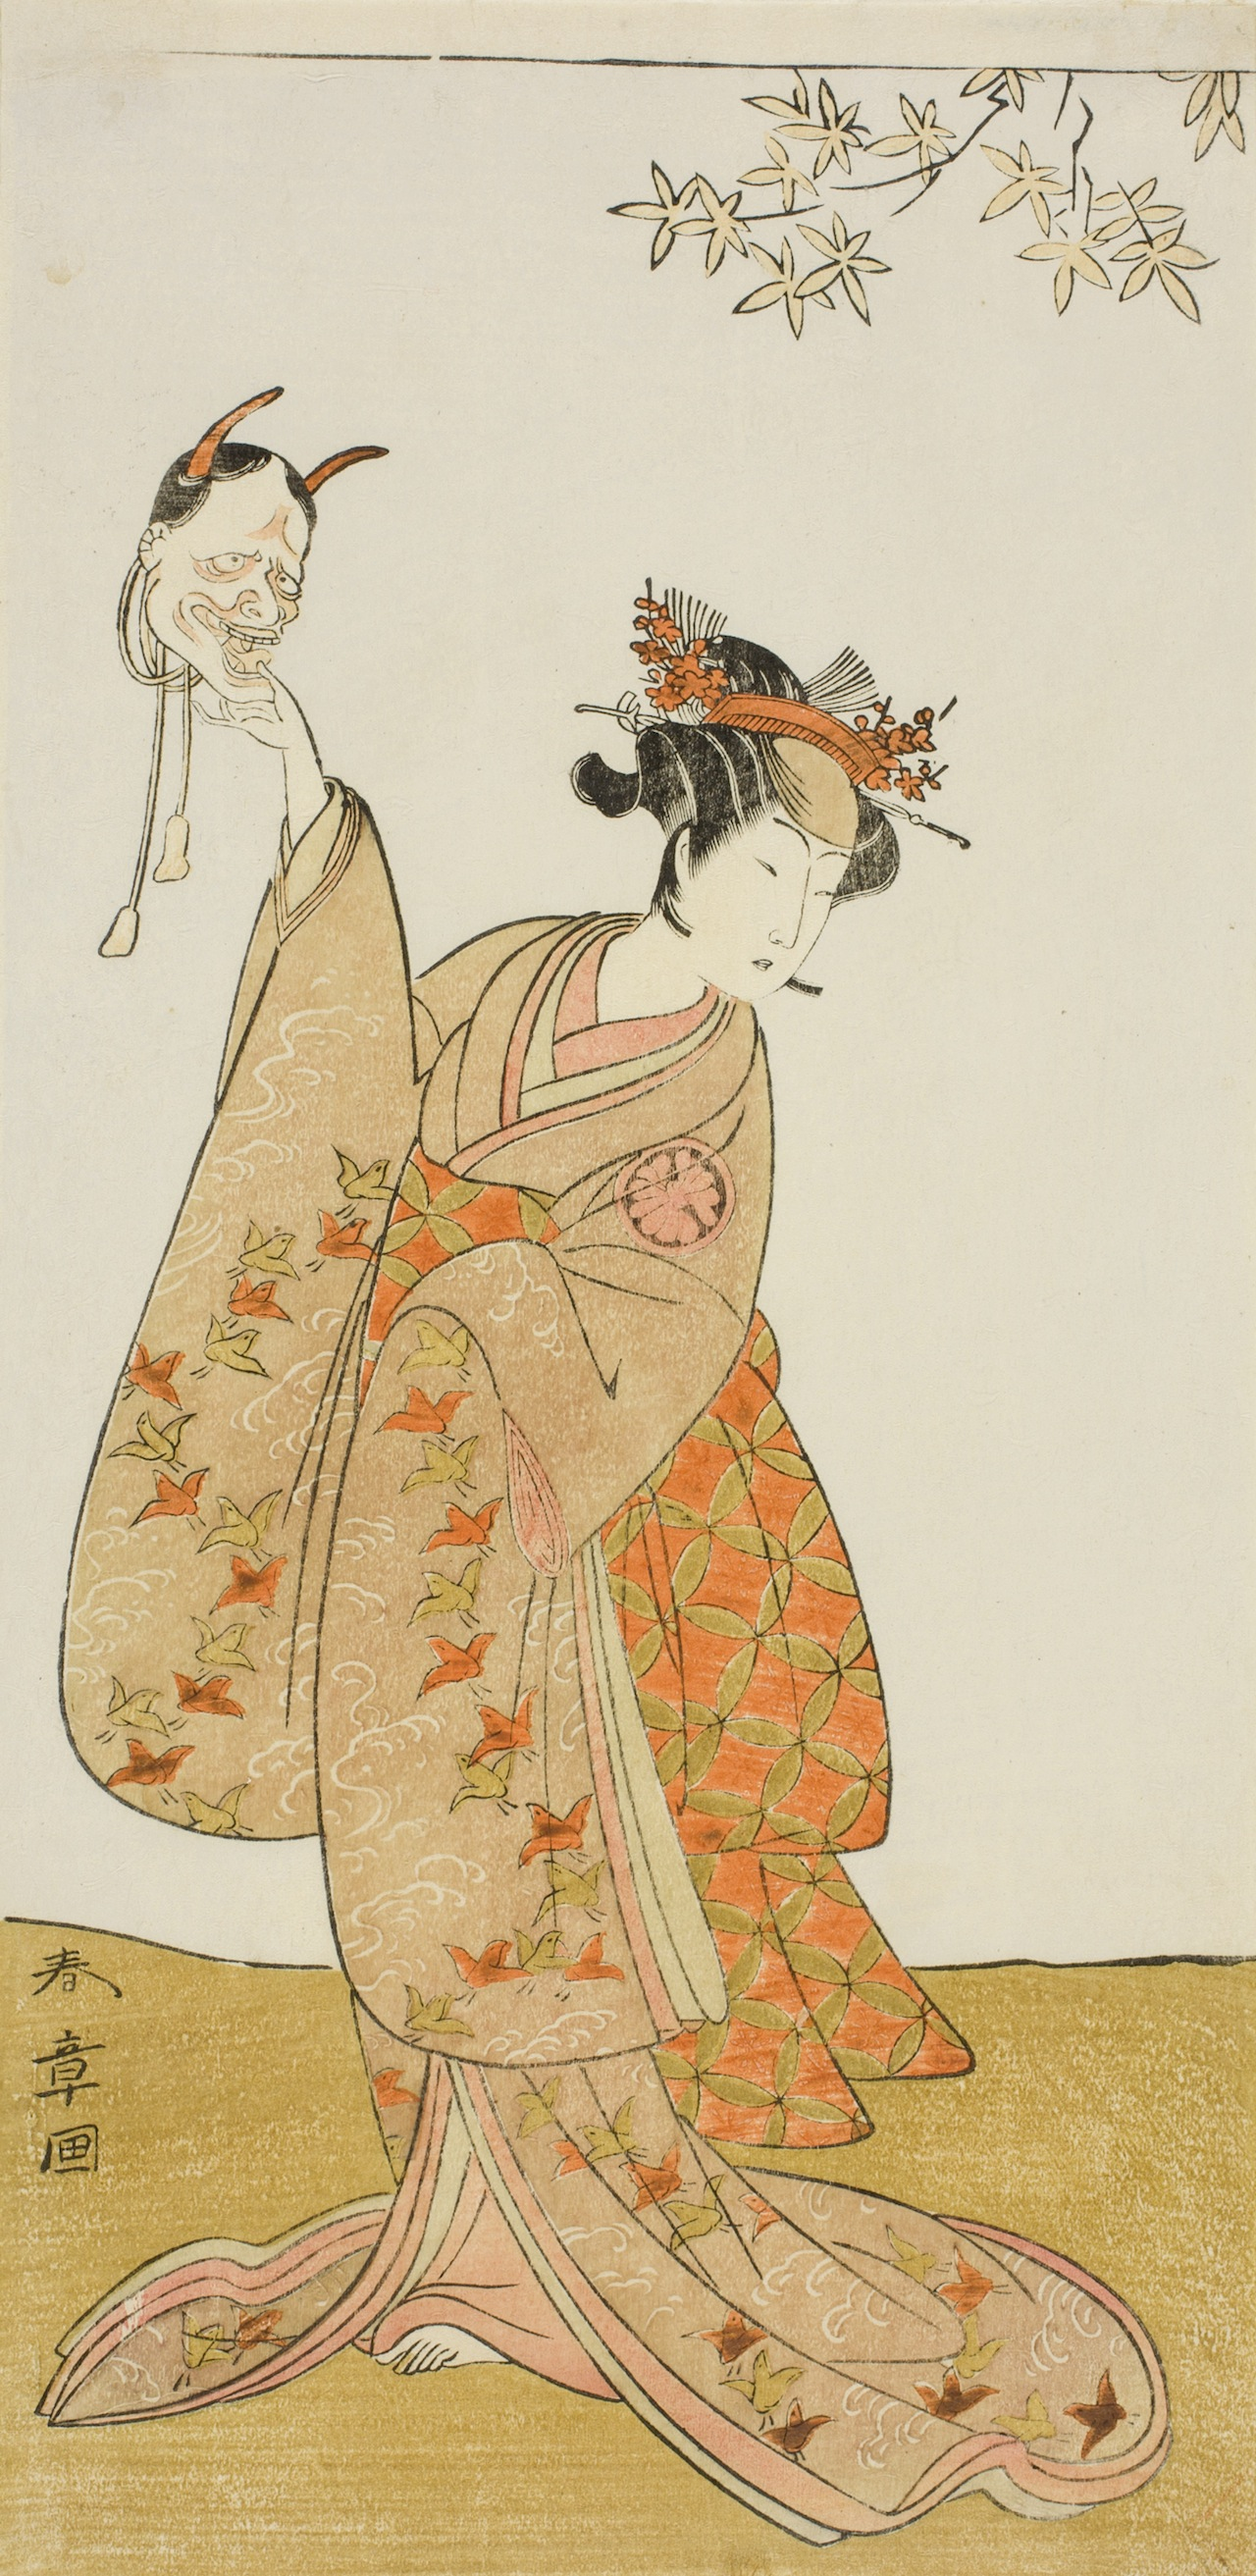 Katsukawa Shunsho. The Actor Segawa Yujiro I as Matsukaze, Sister of Togashi no Saemon, in the Play Gohiiki Kanjincho (Your Favorite Play Kanjincho [The Subscription List]), Performed at the Nakamura Theater from the First Day of the Eleventh Month, 1773, c. 1773. The Art Institute of Chicago. Clarence Buckingham Collection.